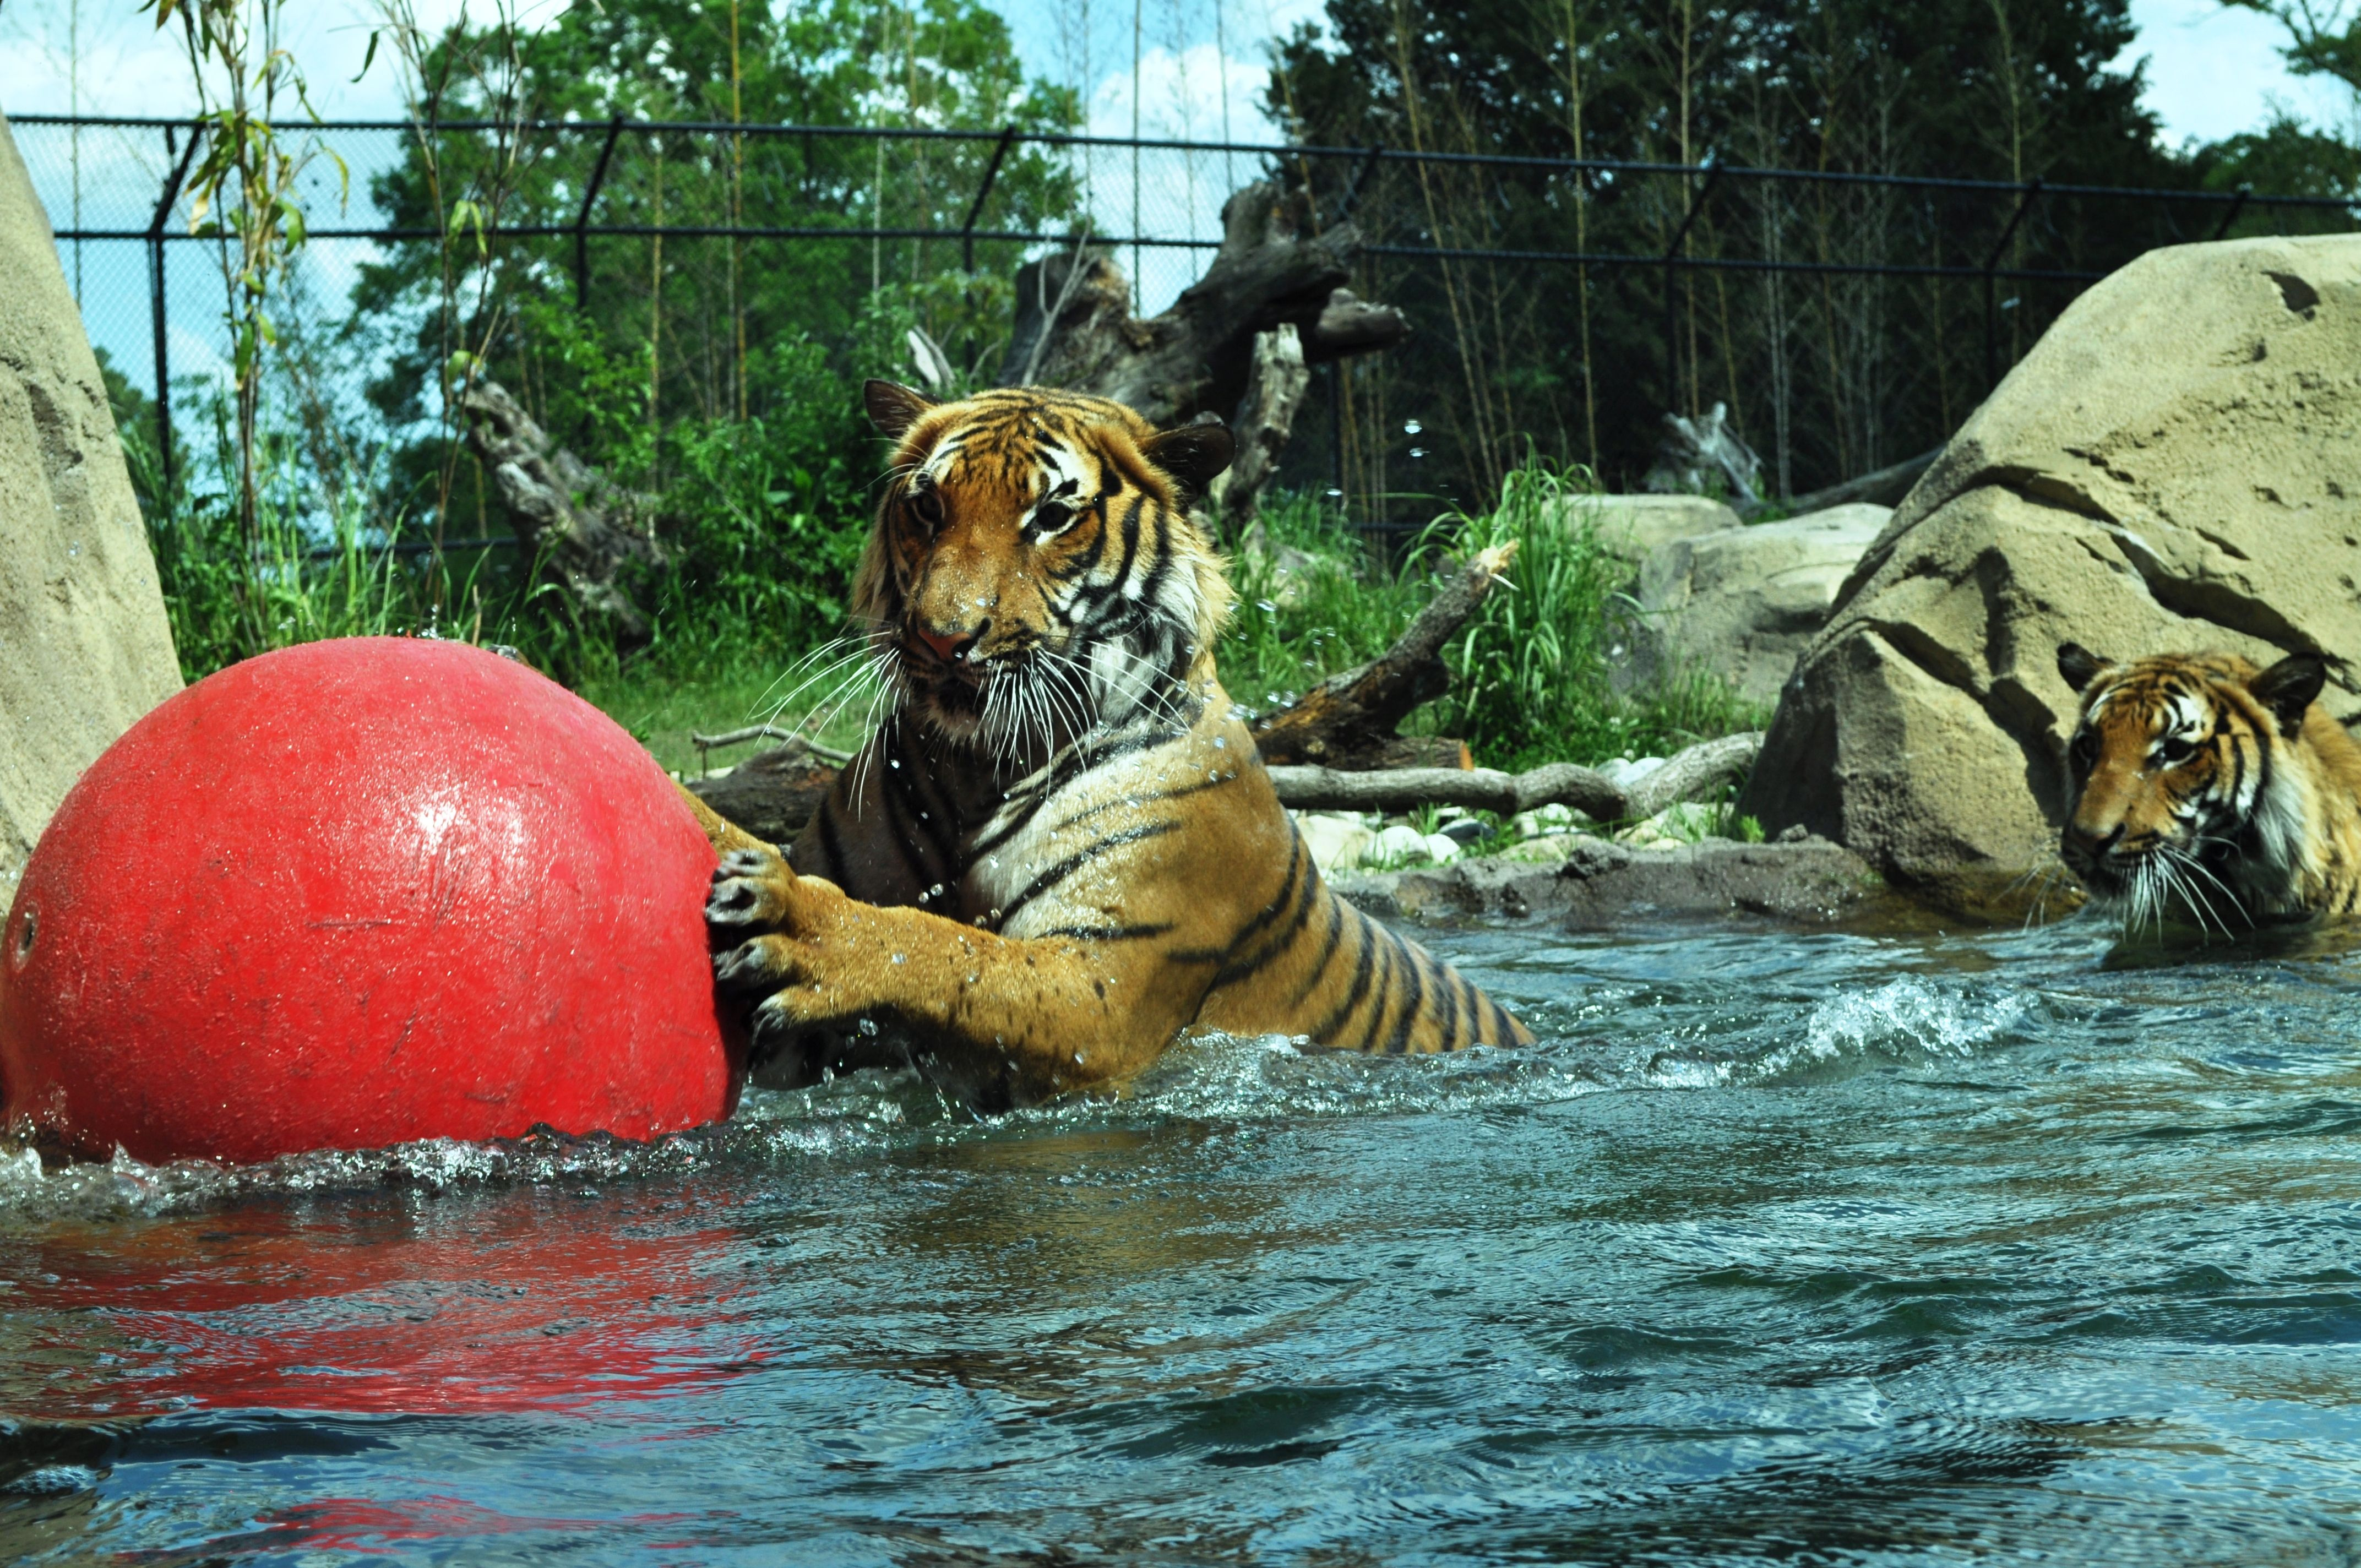 Today I visited the zoo and watched the tigers play.